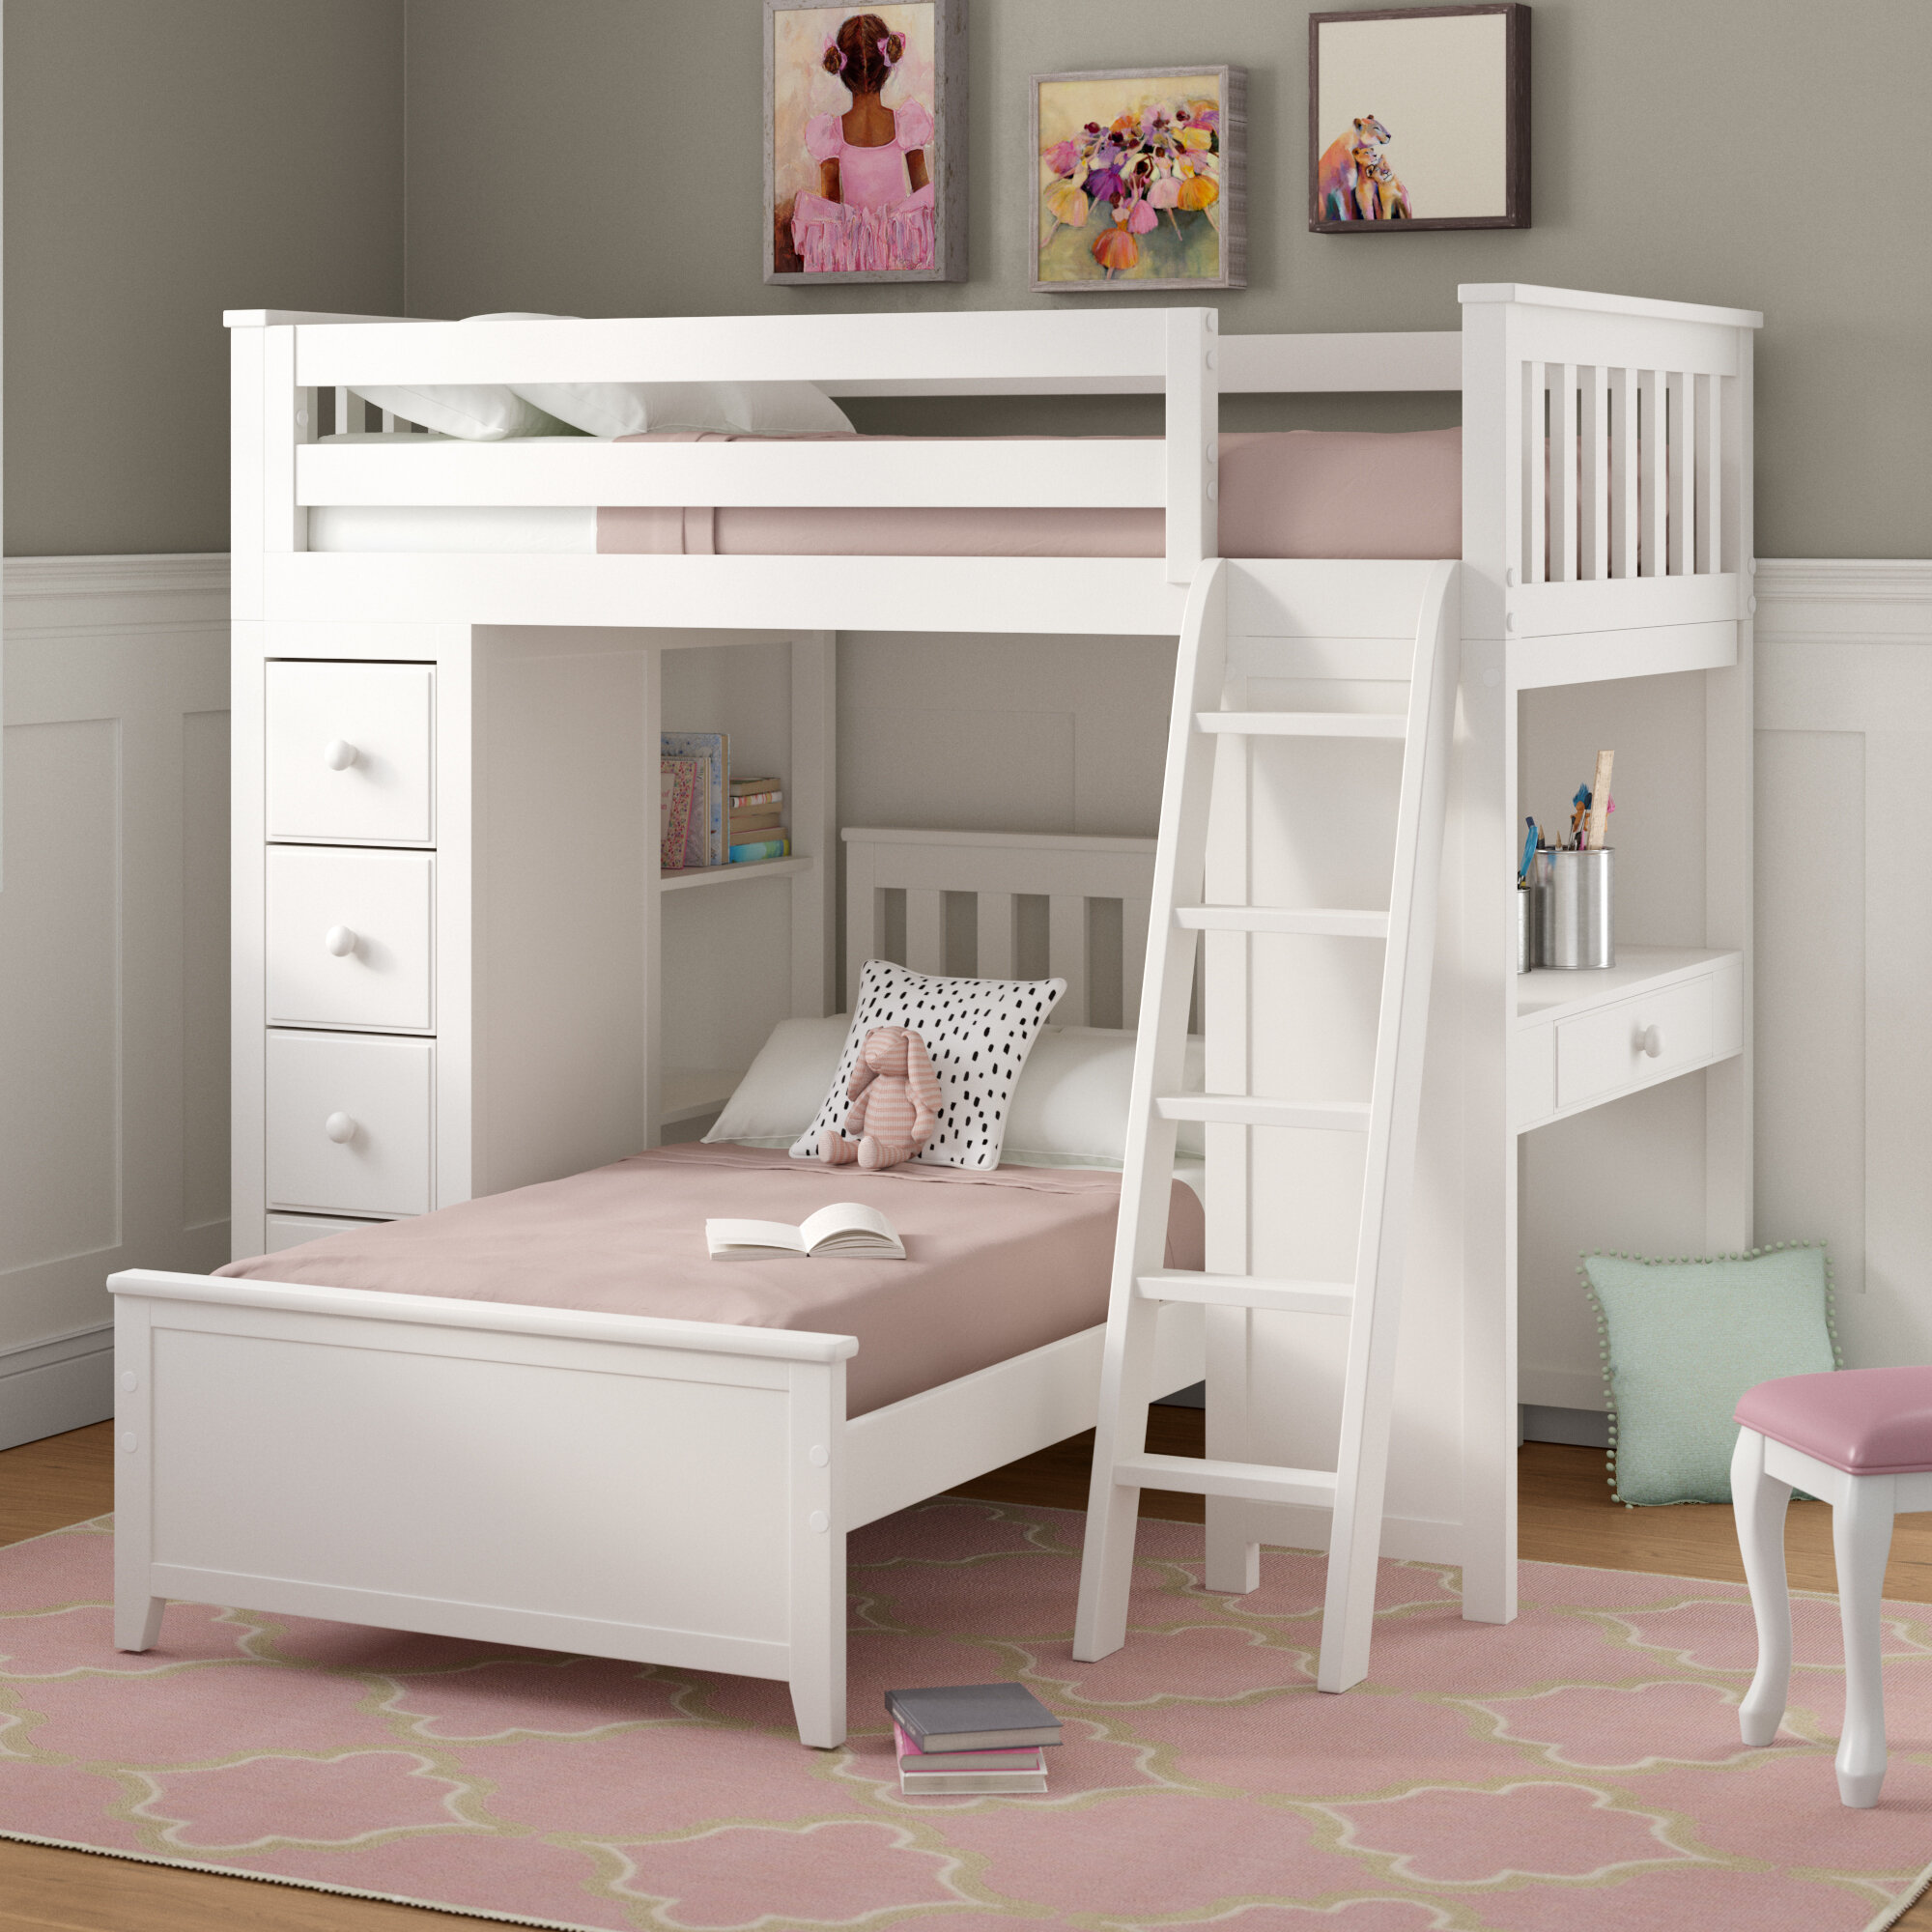 Harriet Bee Ayres Twin L Shaped Bunk Bed With Drawers Wayfair